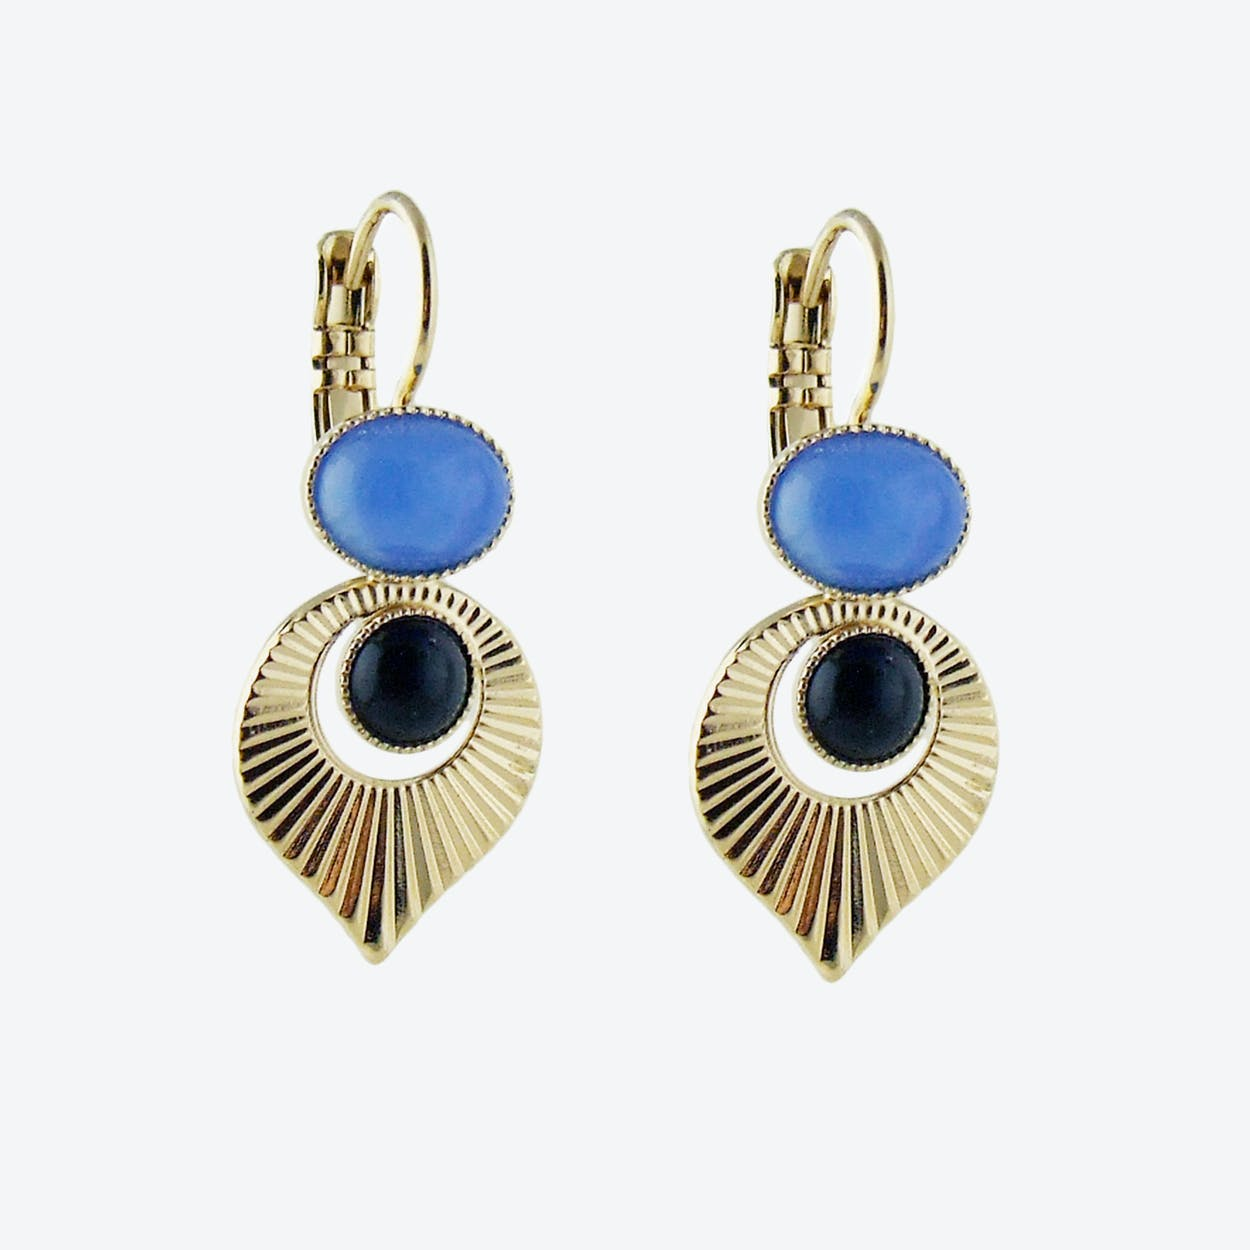 Gold Art Deco Style Earrings in Black and Blue